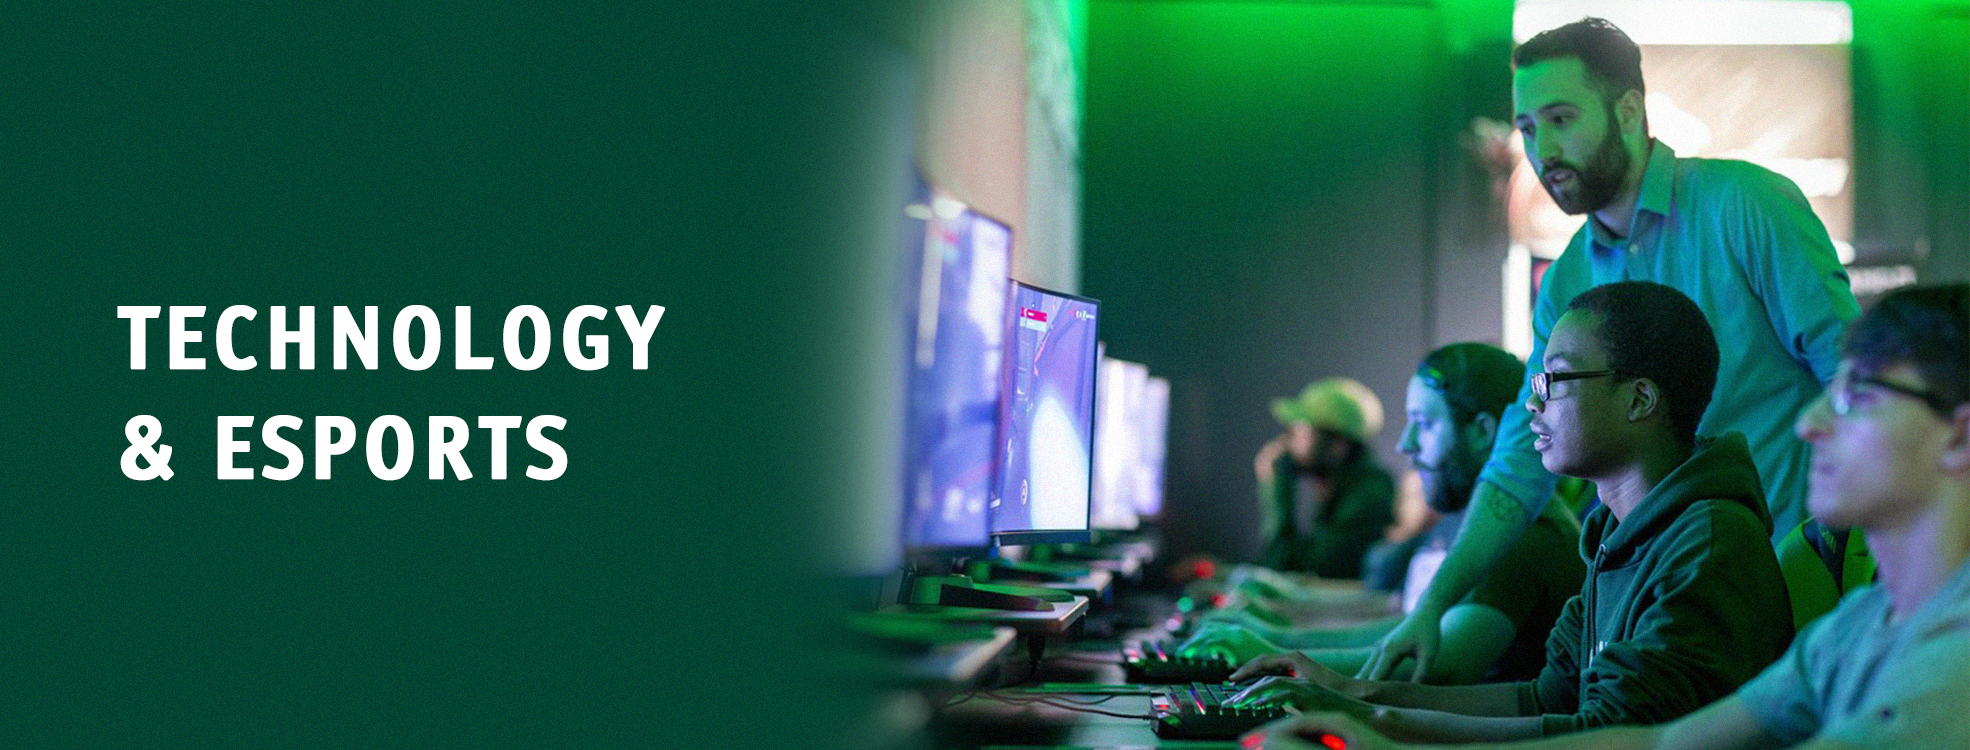 Summer Program - Computer Science | eSports and Technology | Summer Pre-College Program for High School Students at Wagner College